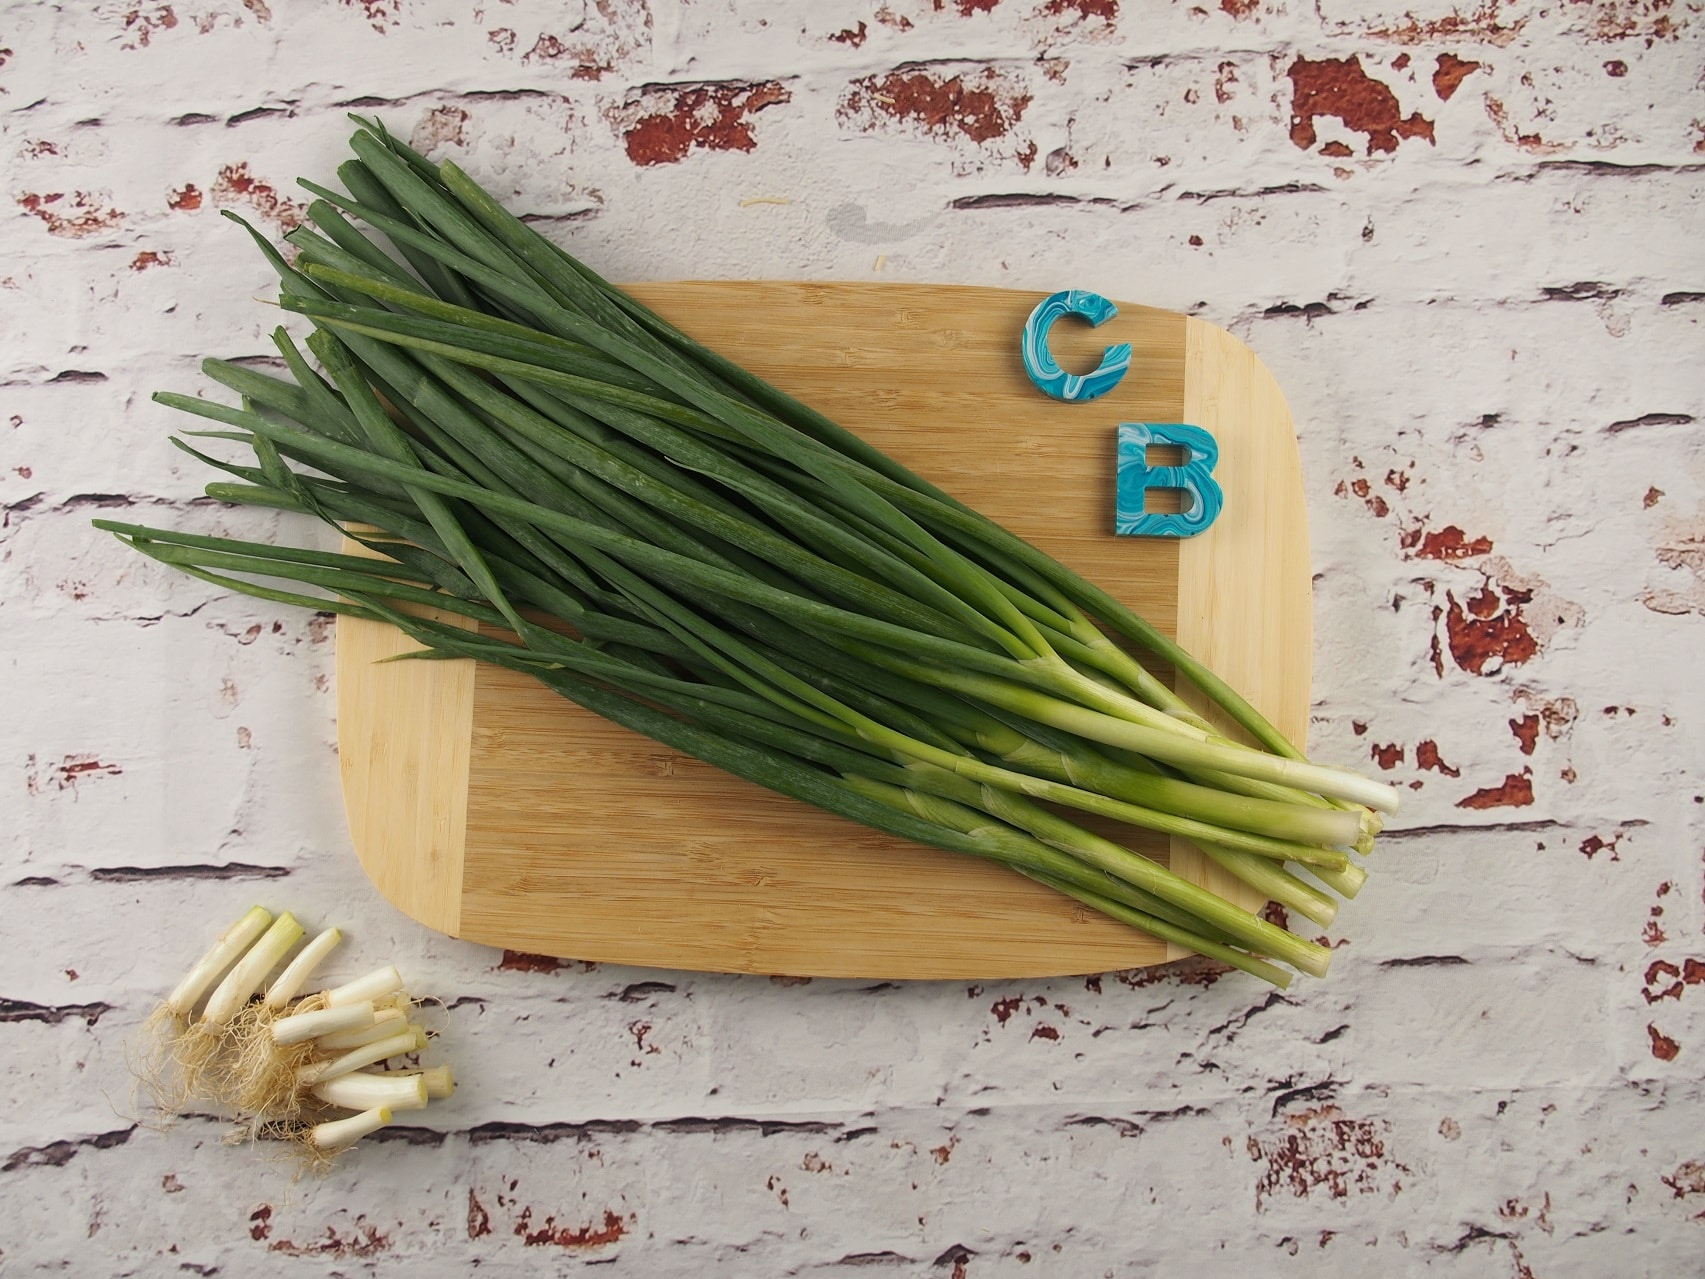 Cooking Blog - Spring Onion Oil Noodles 2